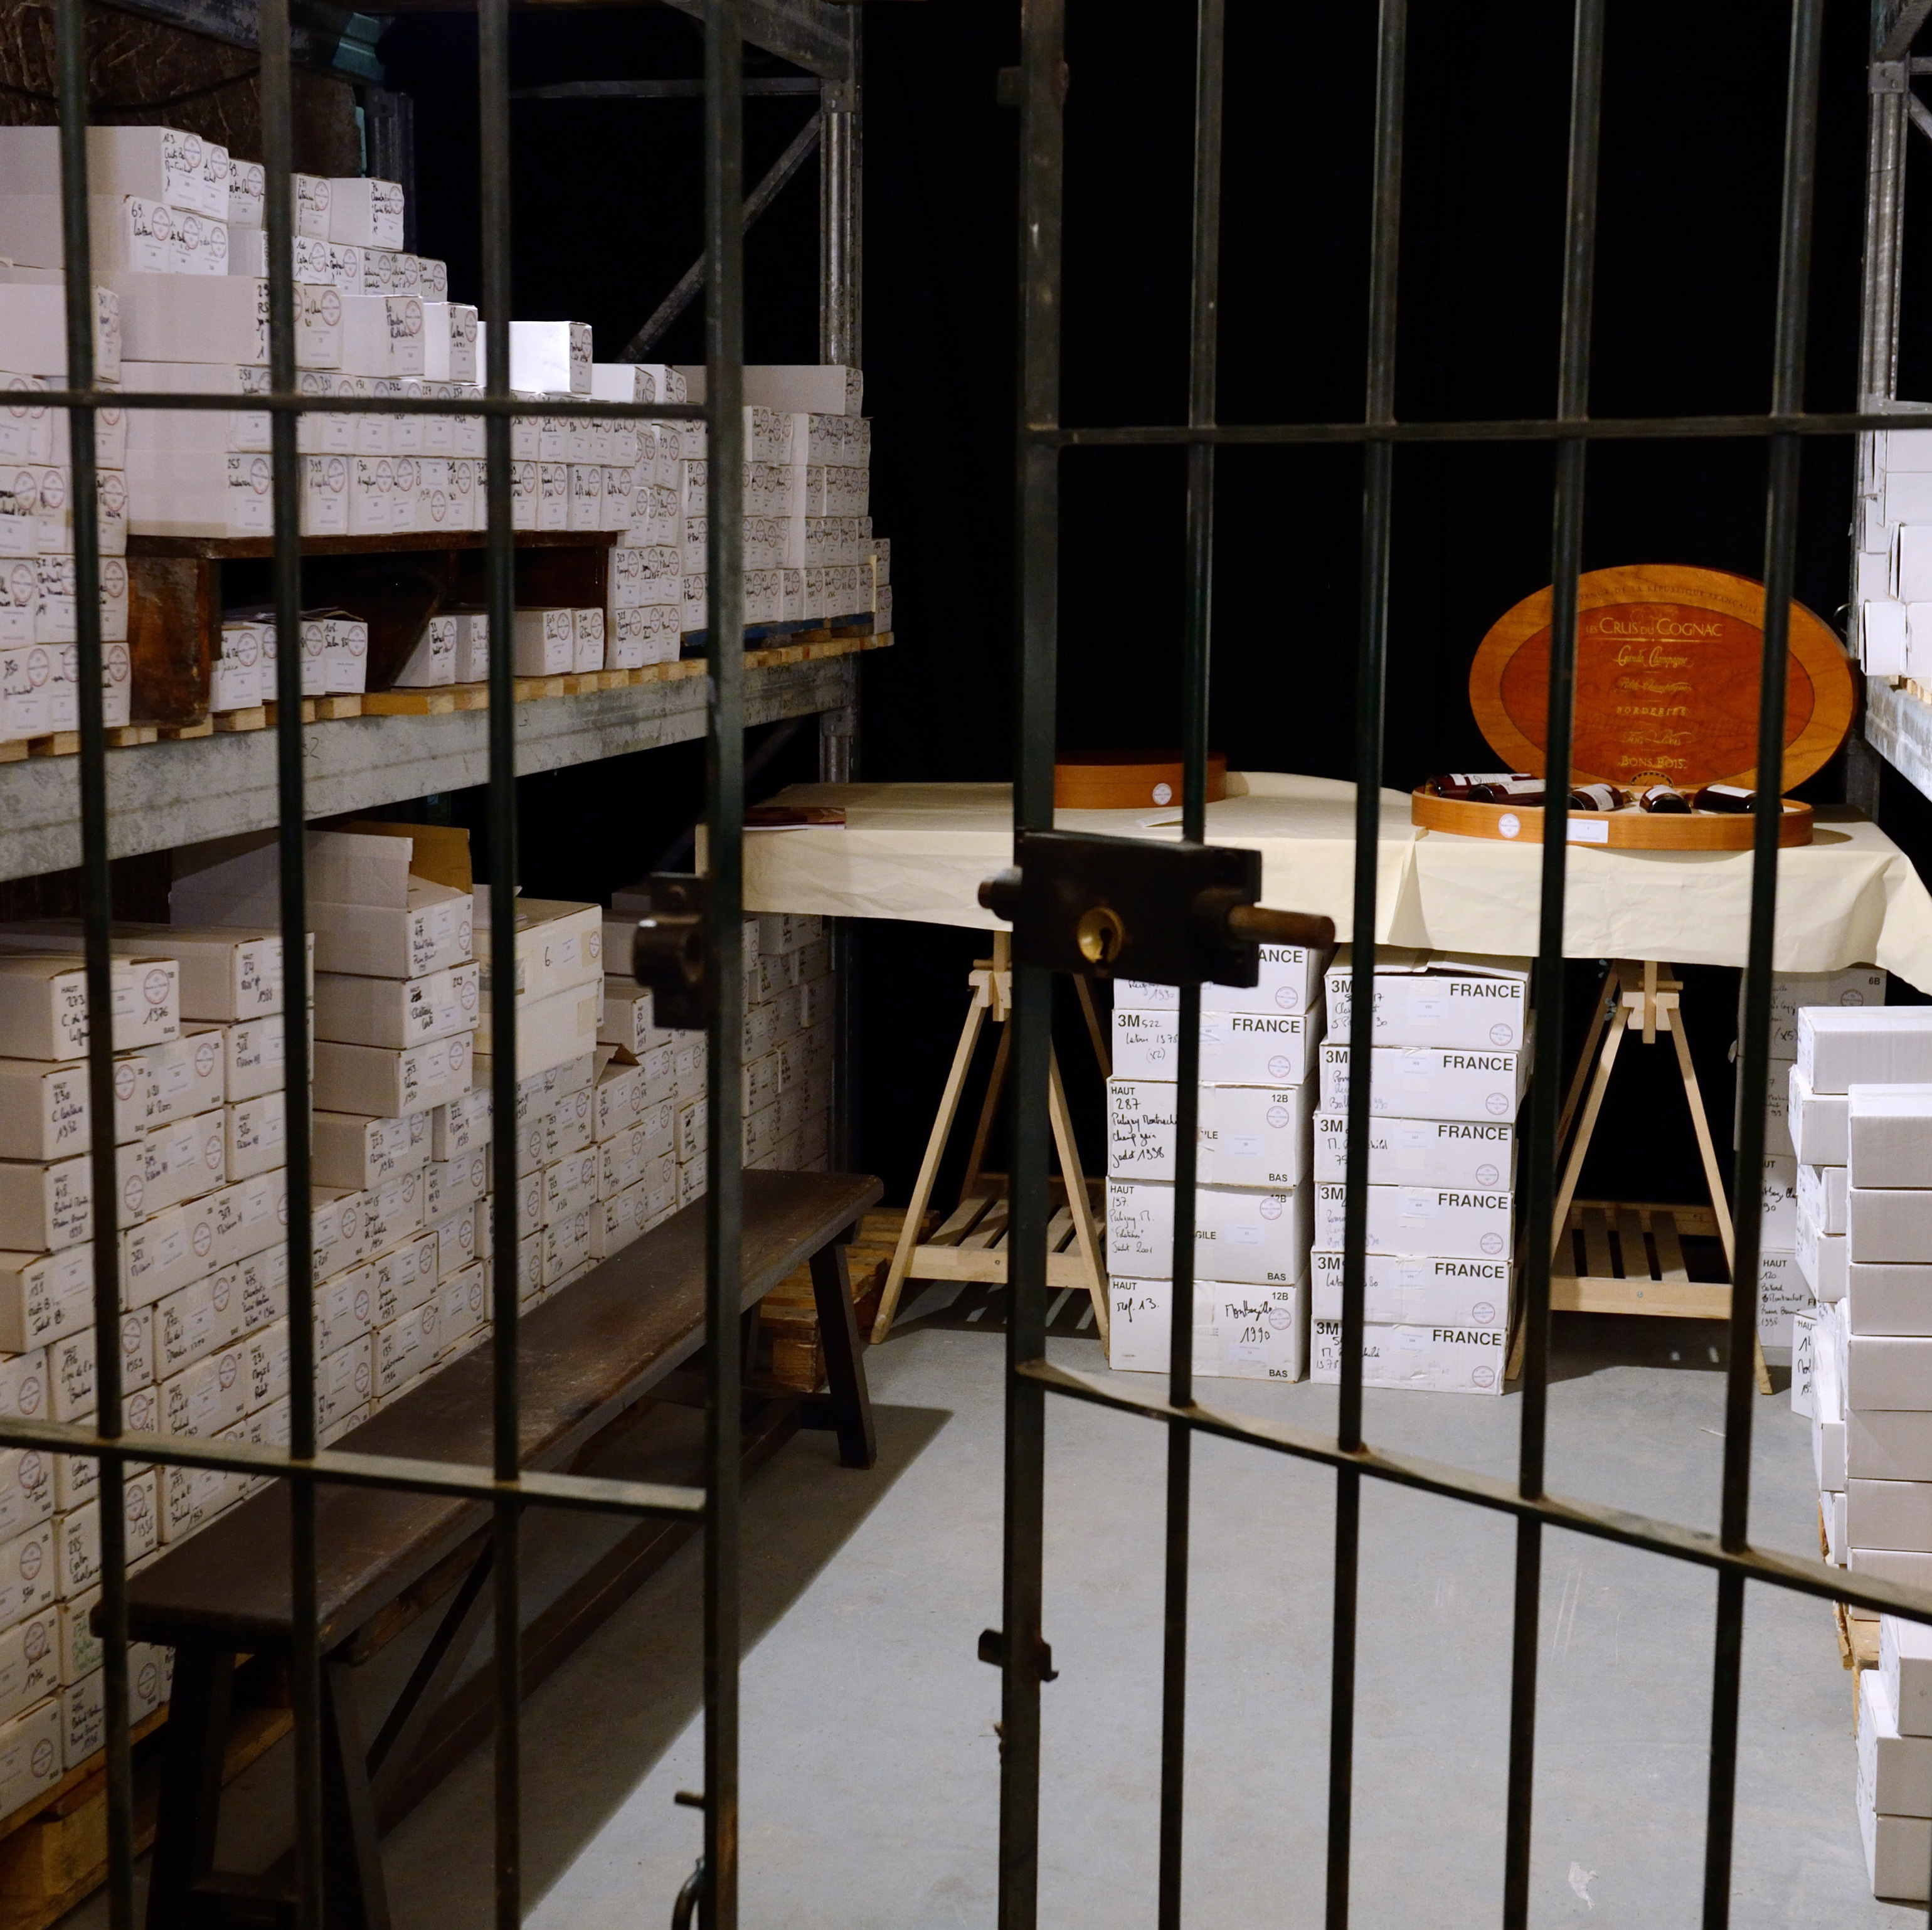 A total of 1,200 bottles from the Elysee Palace cellar, including some of the world's most prestigious labels, are stacked in Issy-les-Moulineaux prior to being sold during an auction in Paris. French President Francois Hollande has been accused of selling off France's national heritage in a sale that has become symbolic of the cash-strapped government's austerity drive.